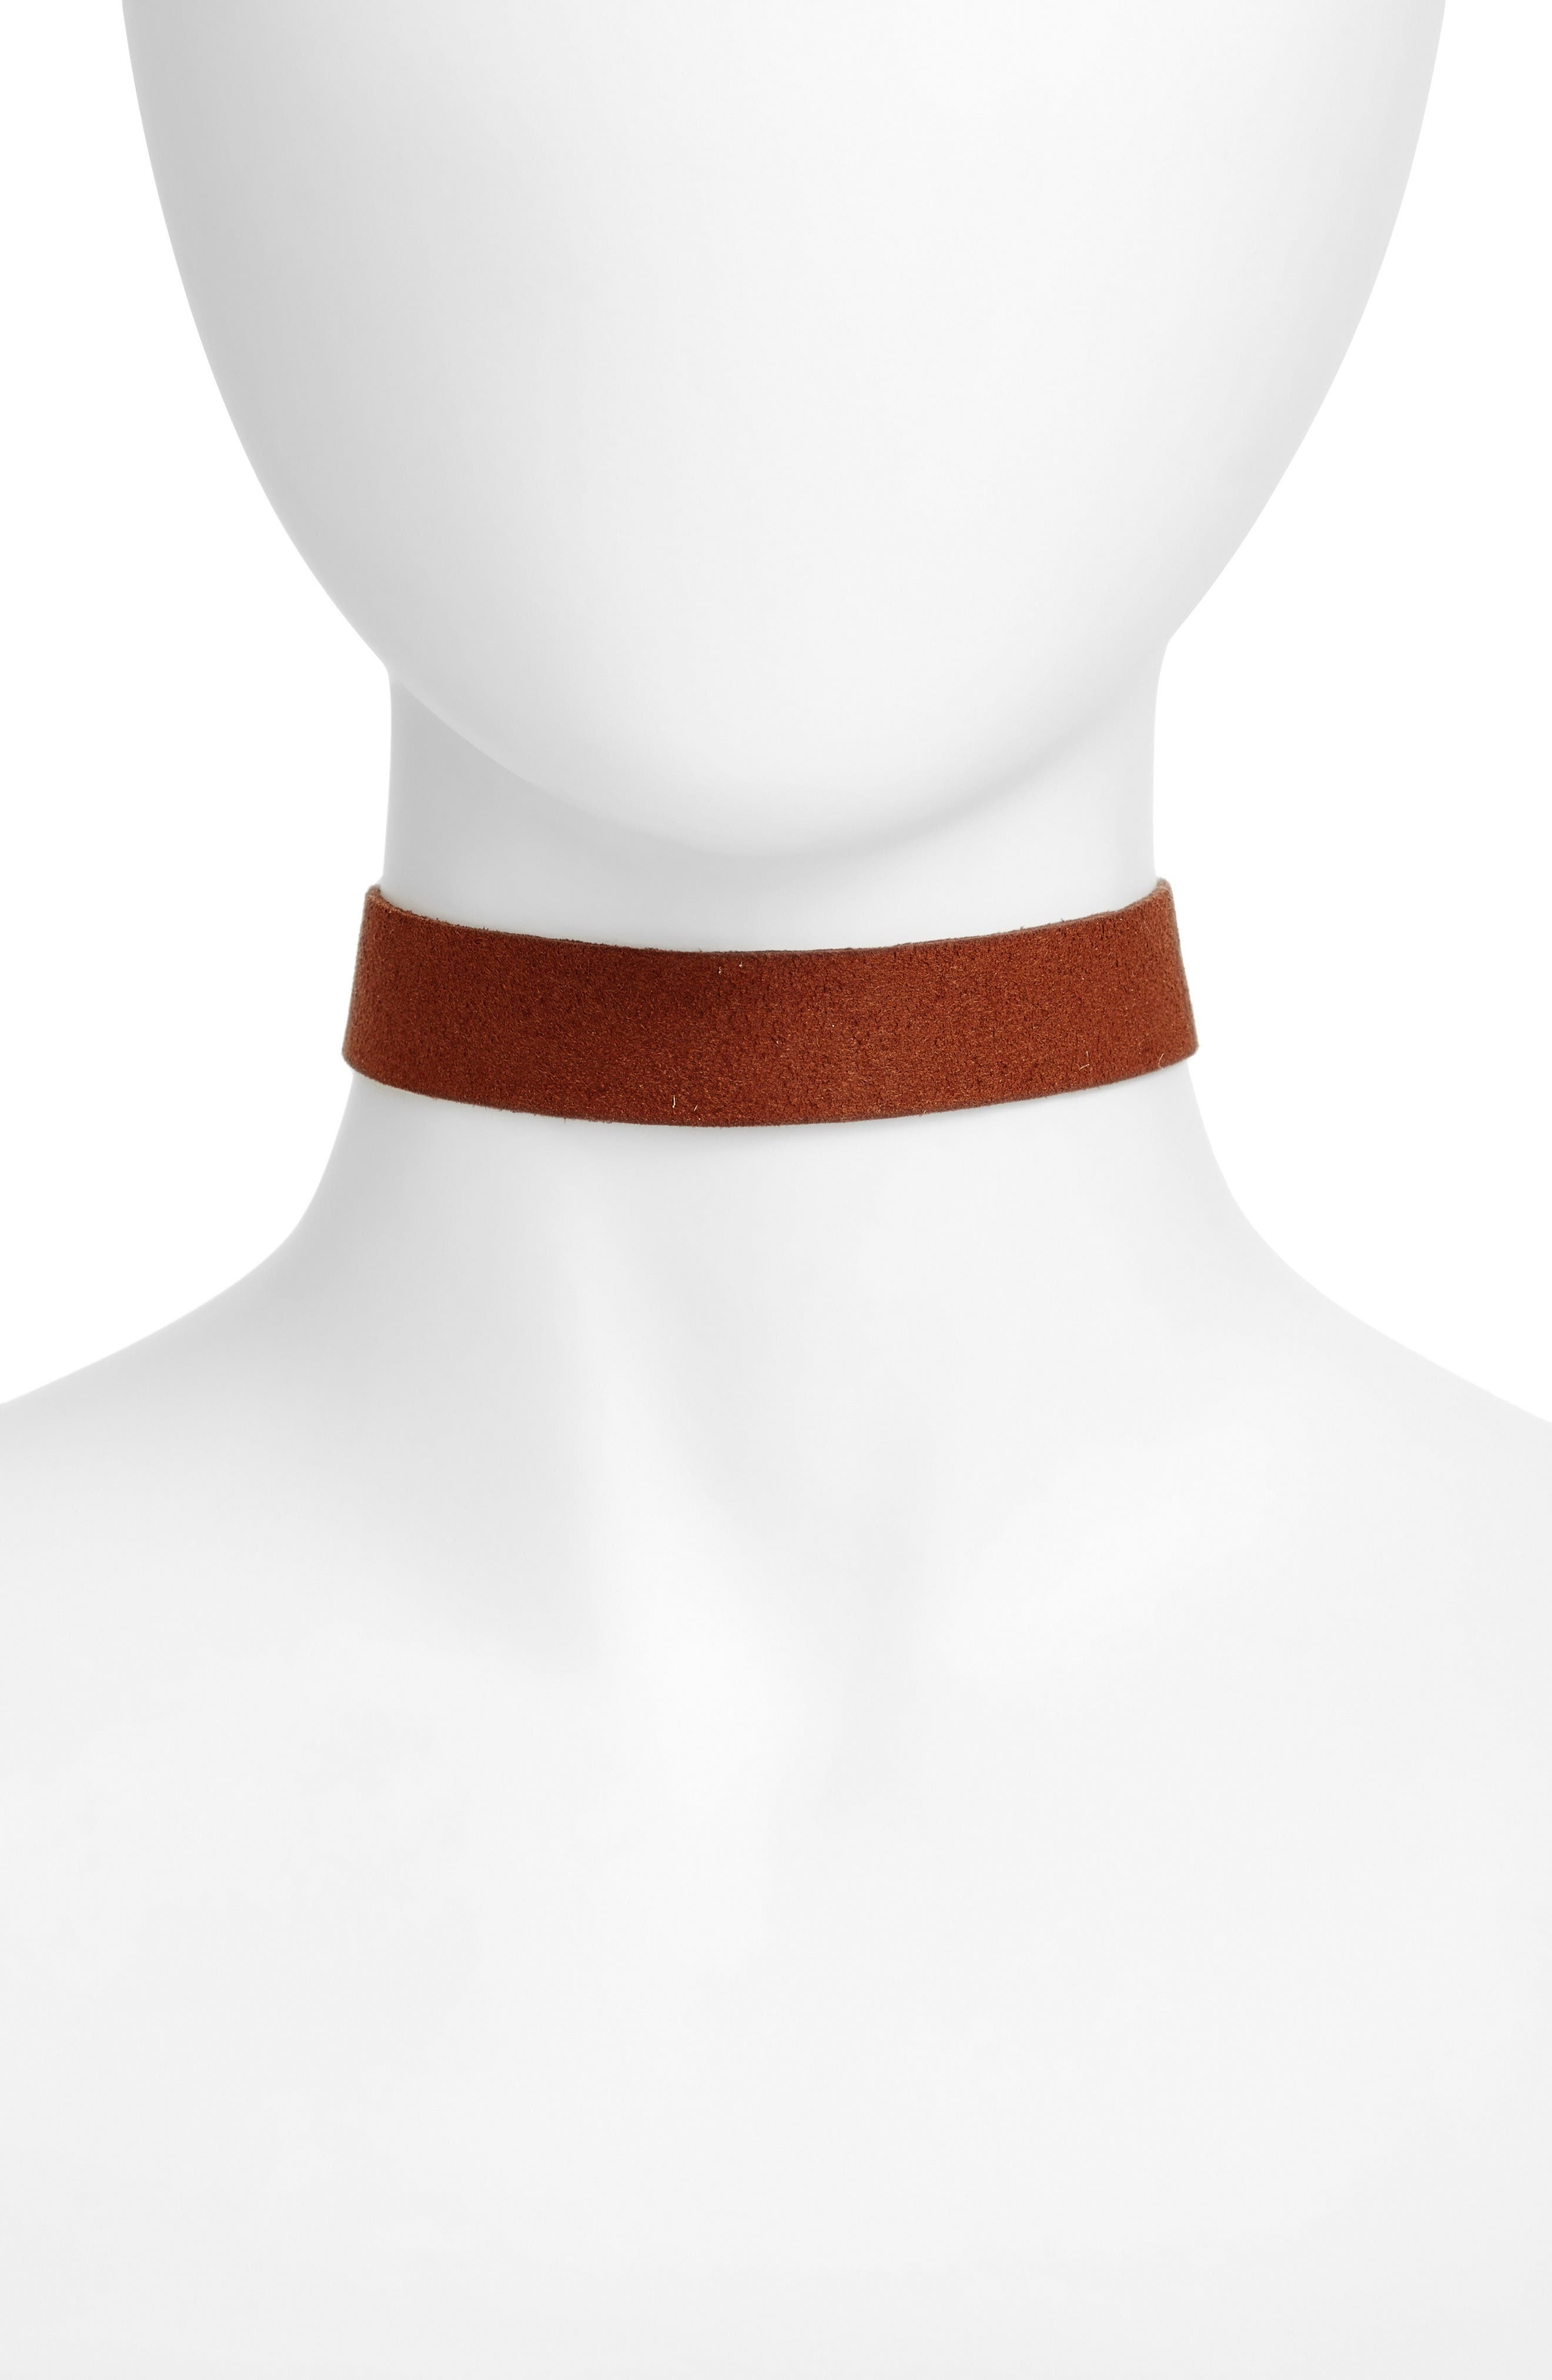 Main Image - Jules Smith Orion Faux Suede Choker